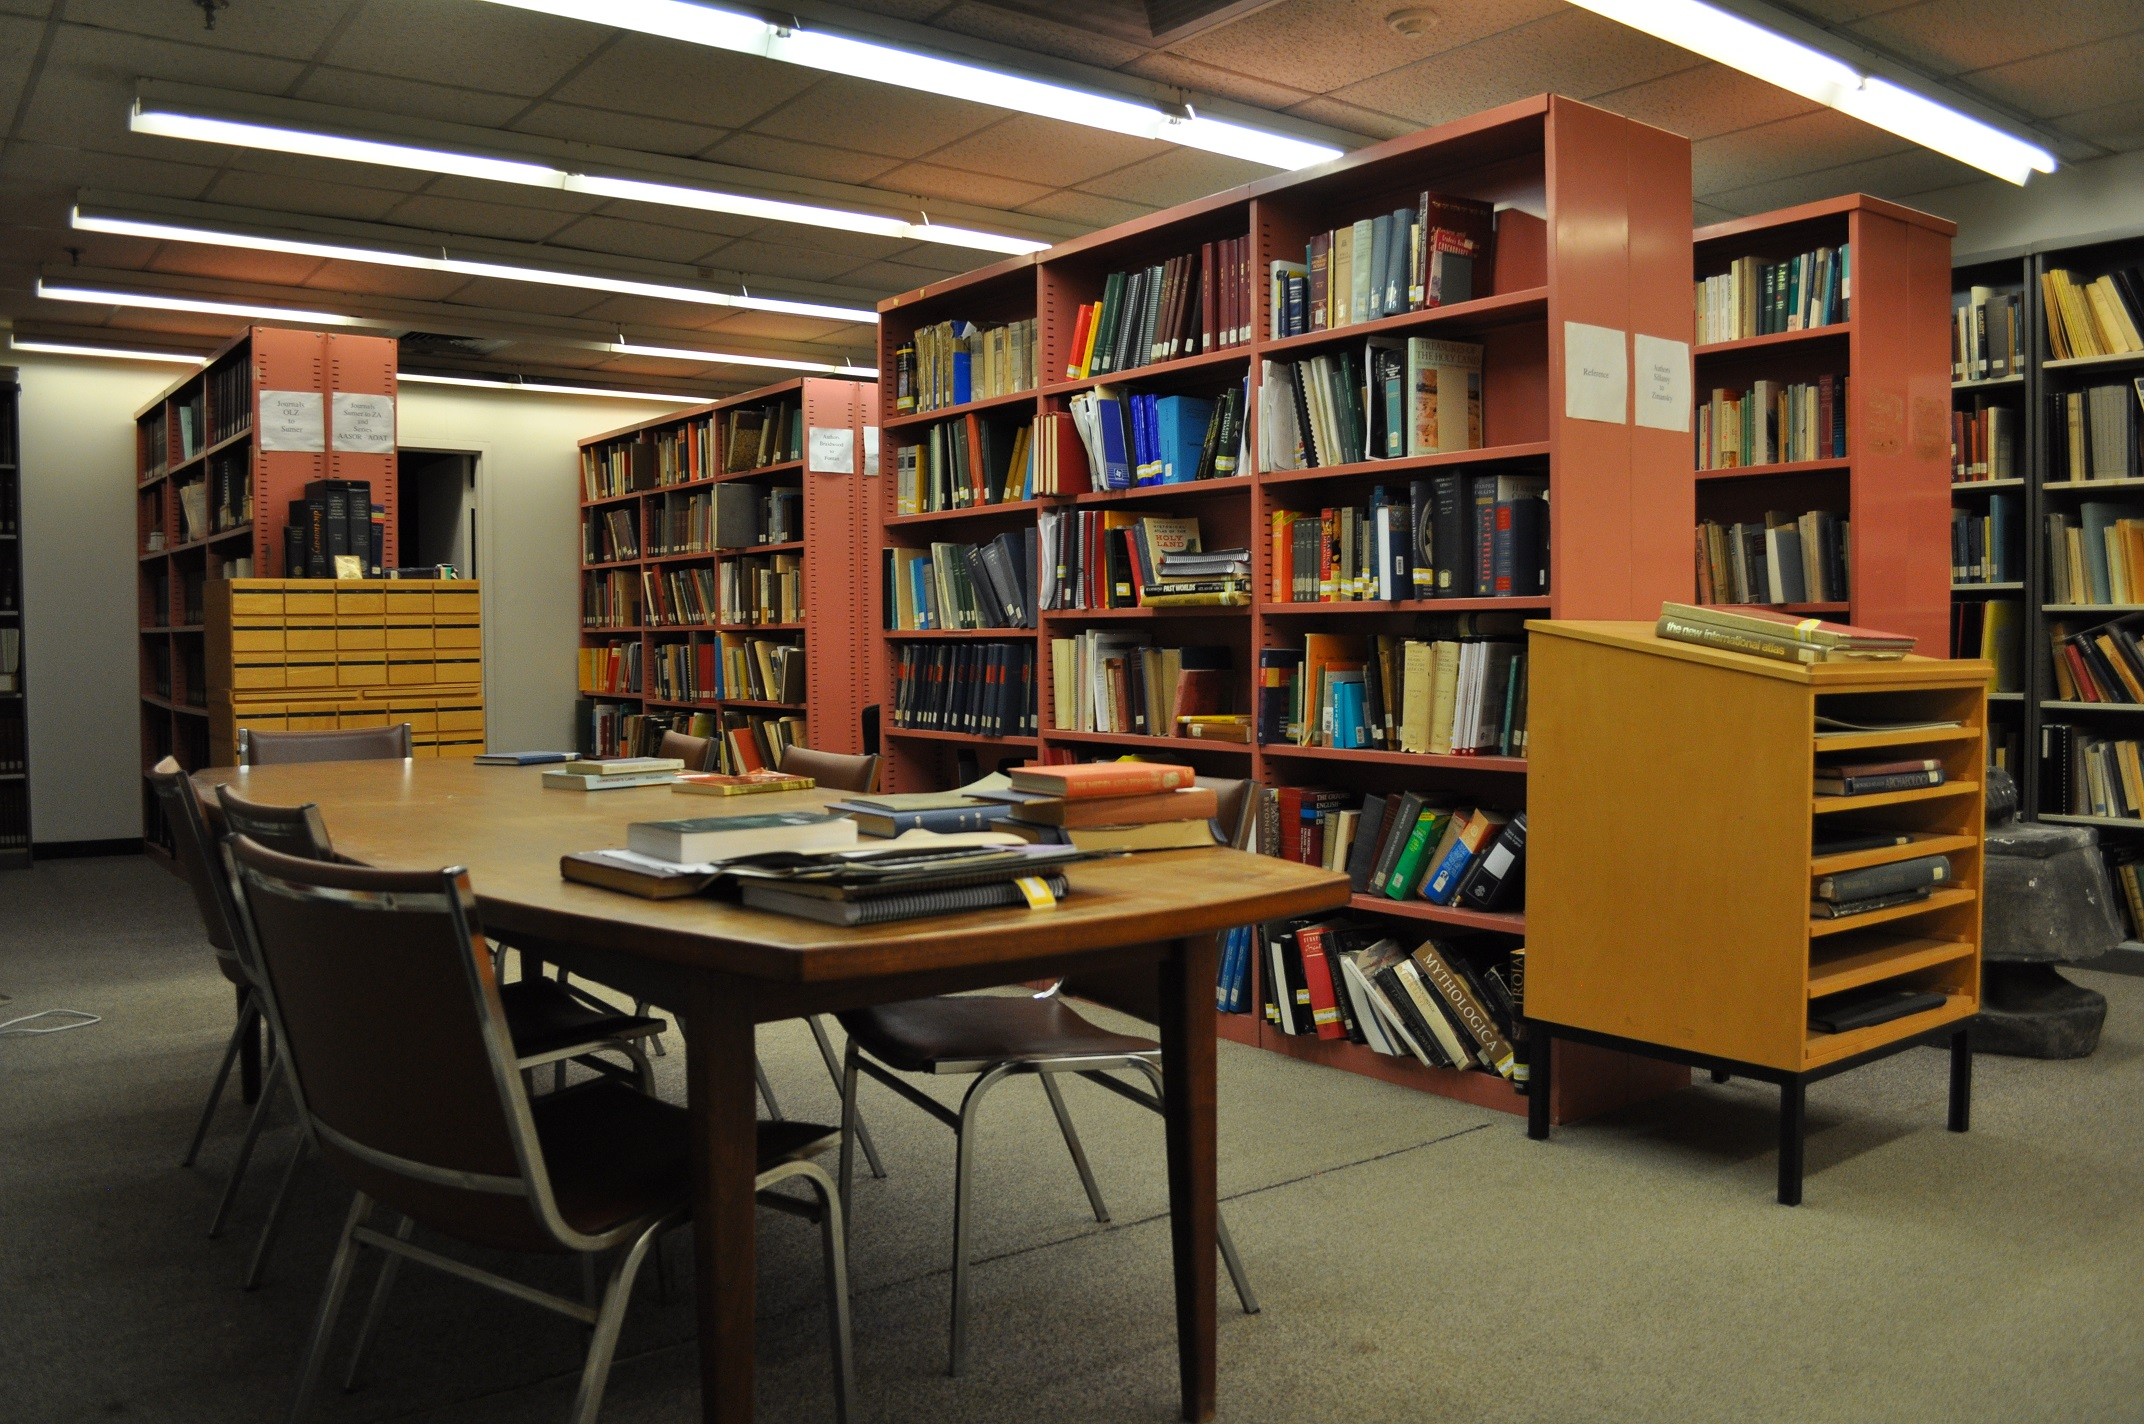 library with desks, chairs and bookshelves